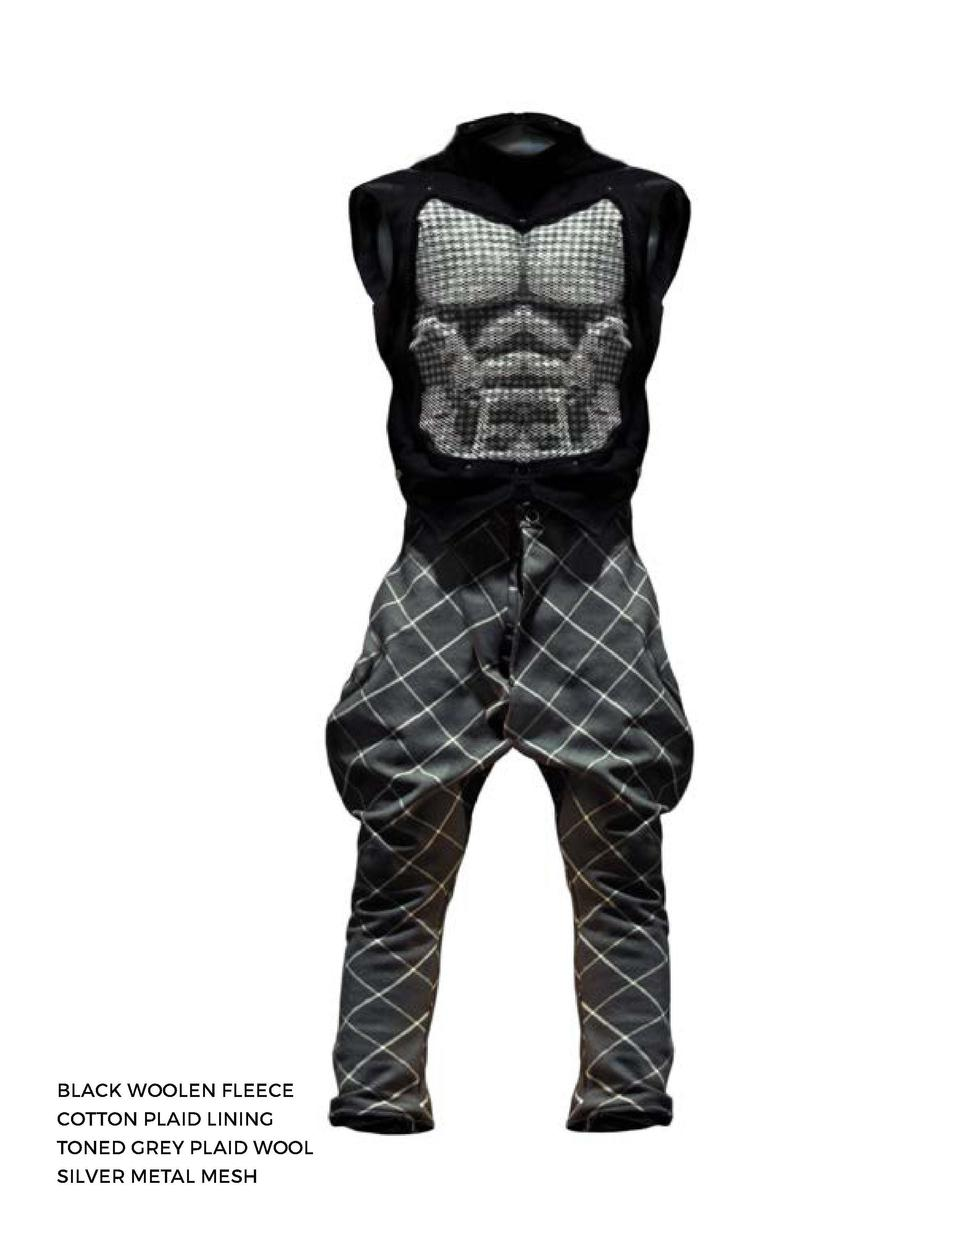 THE METAL BOLTED JUMPSUIT BLACK WOOLEN FLEECE COTTON PLAID LINING TONED GREY PLAID WOOL SILVER METAL MESH       258